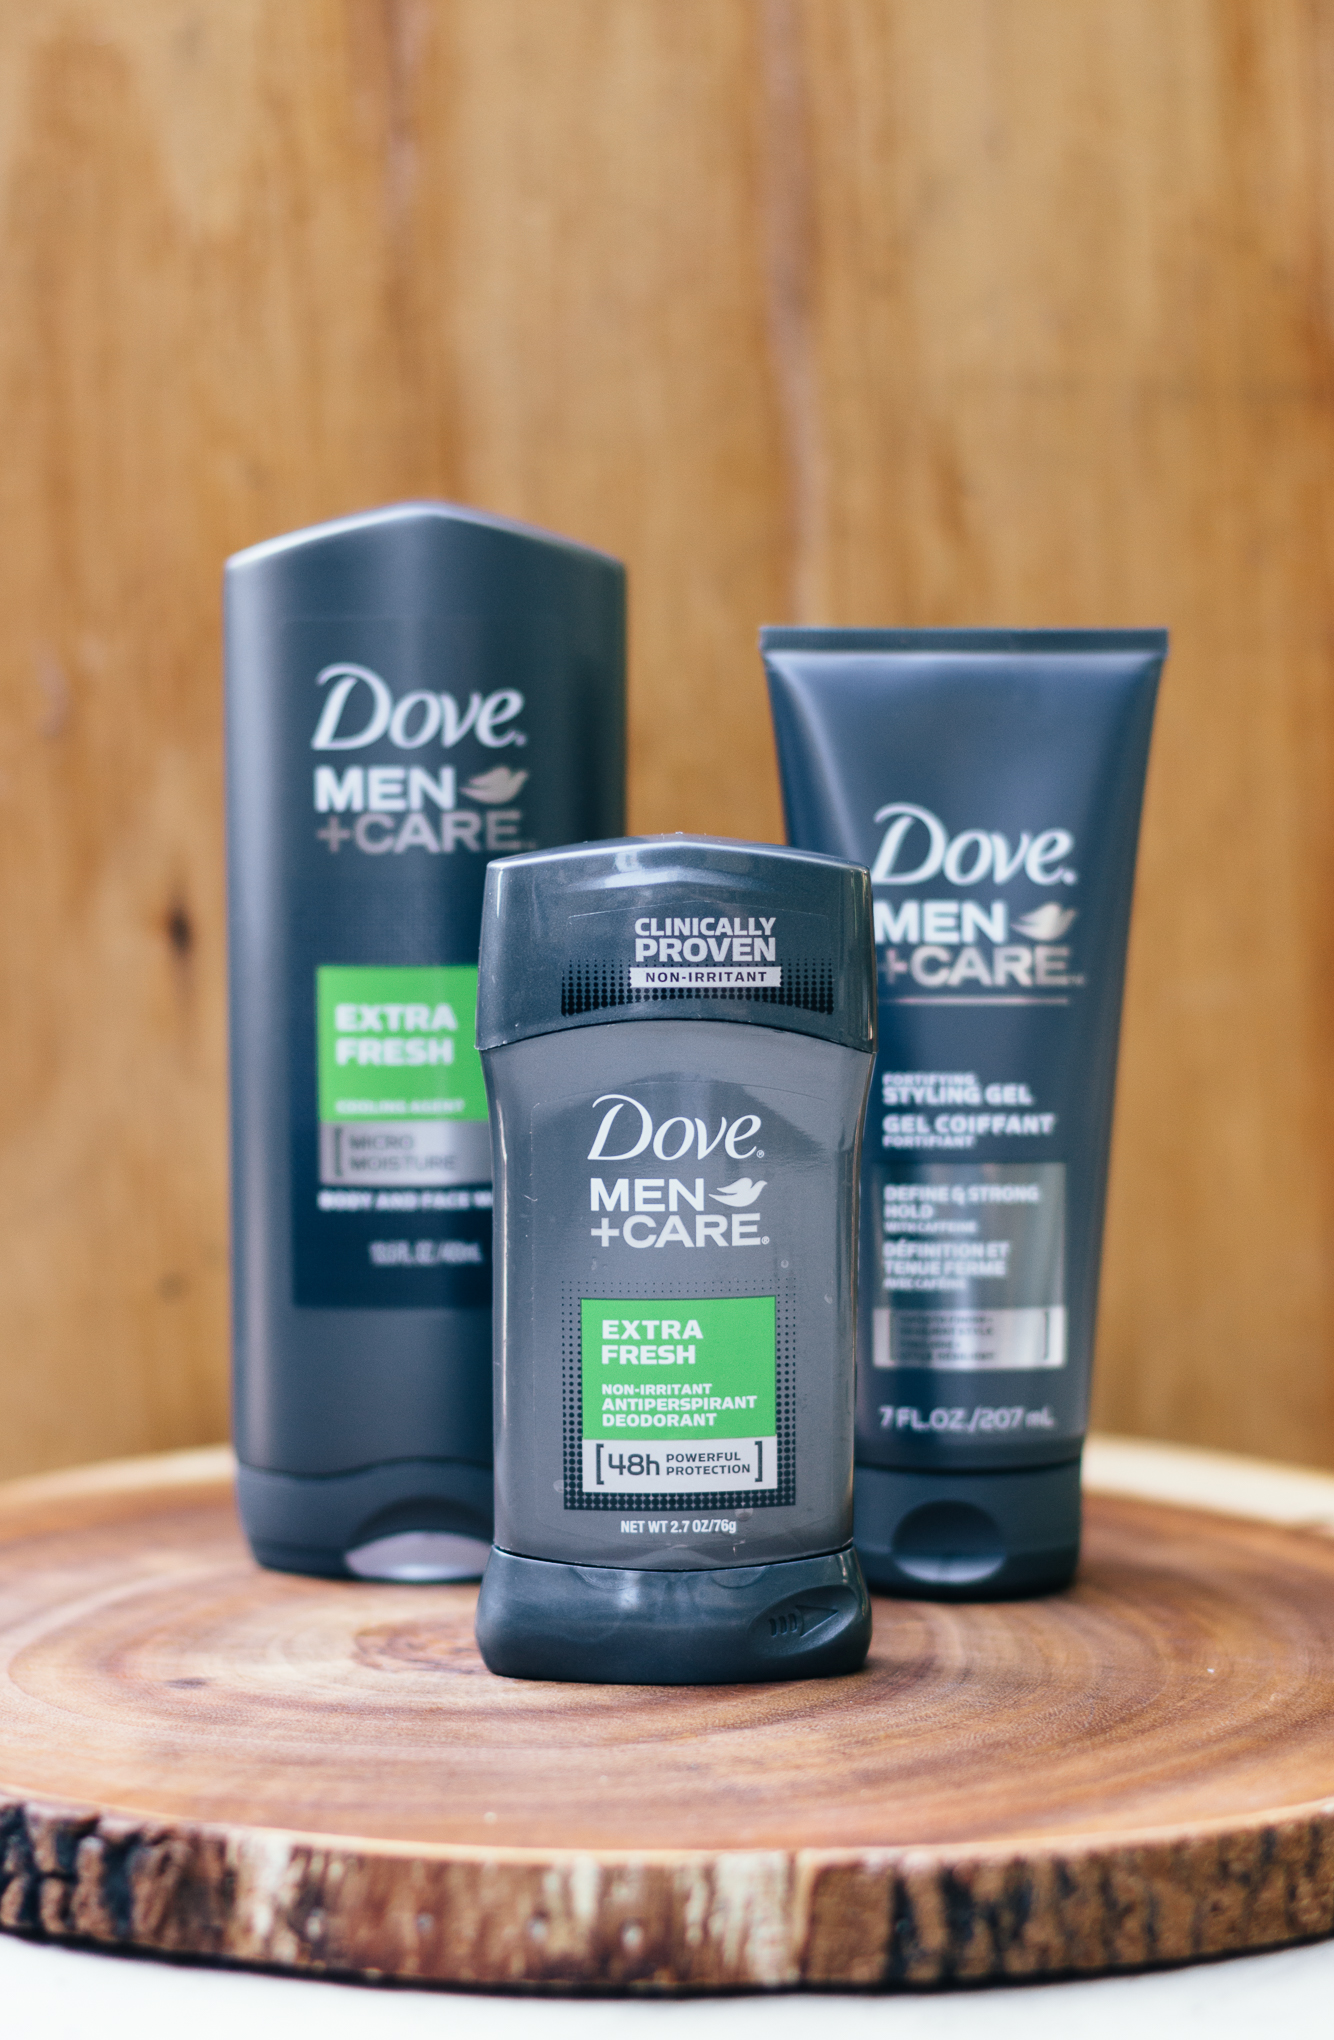 gq best grooming products, gq, cvs, drug store beauty steals, best grooming products, mens grooming products